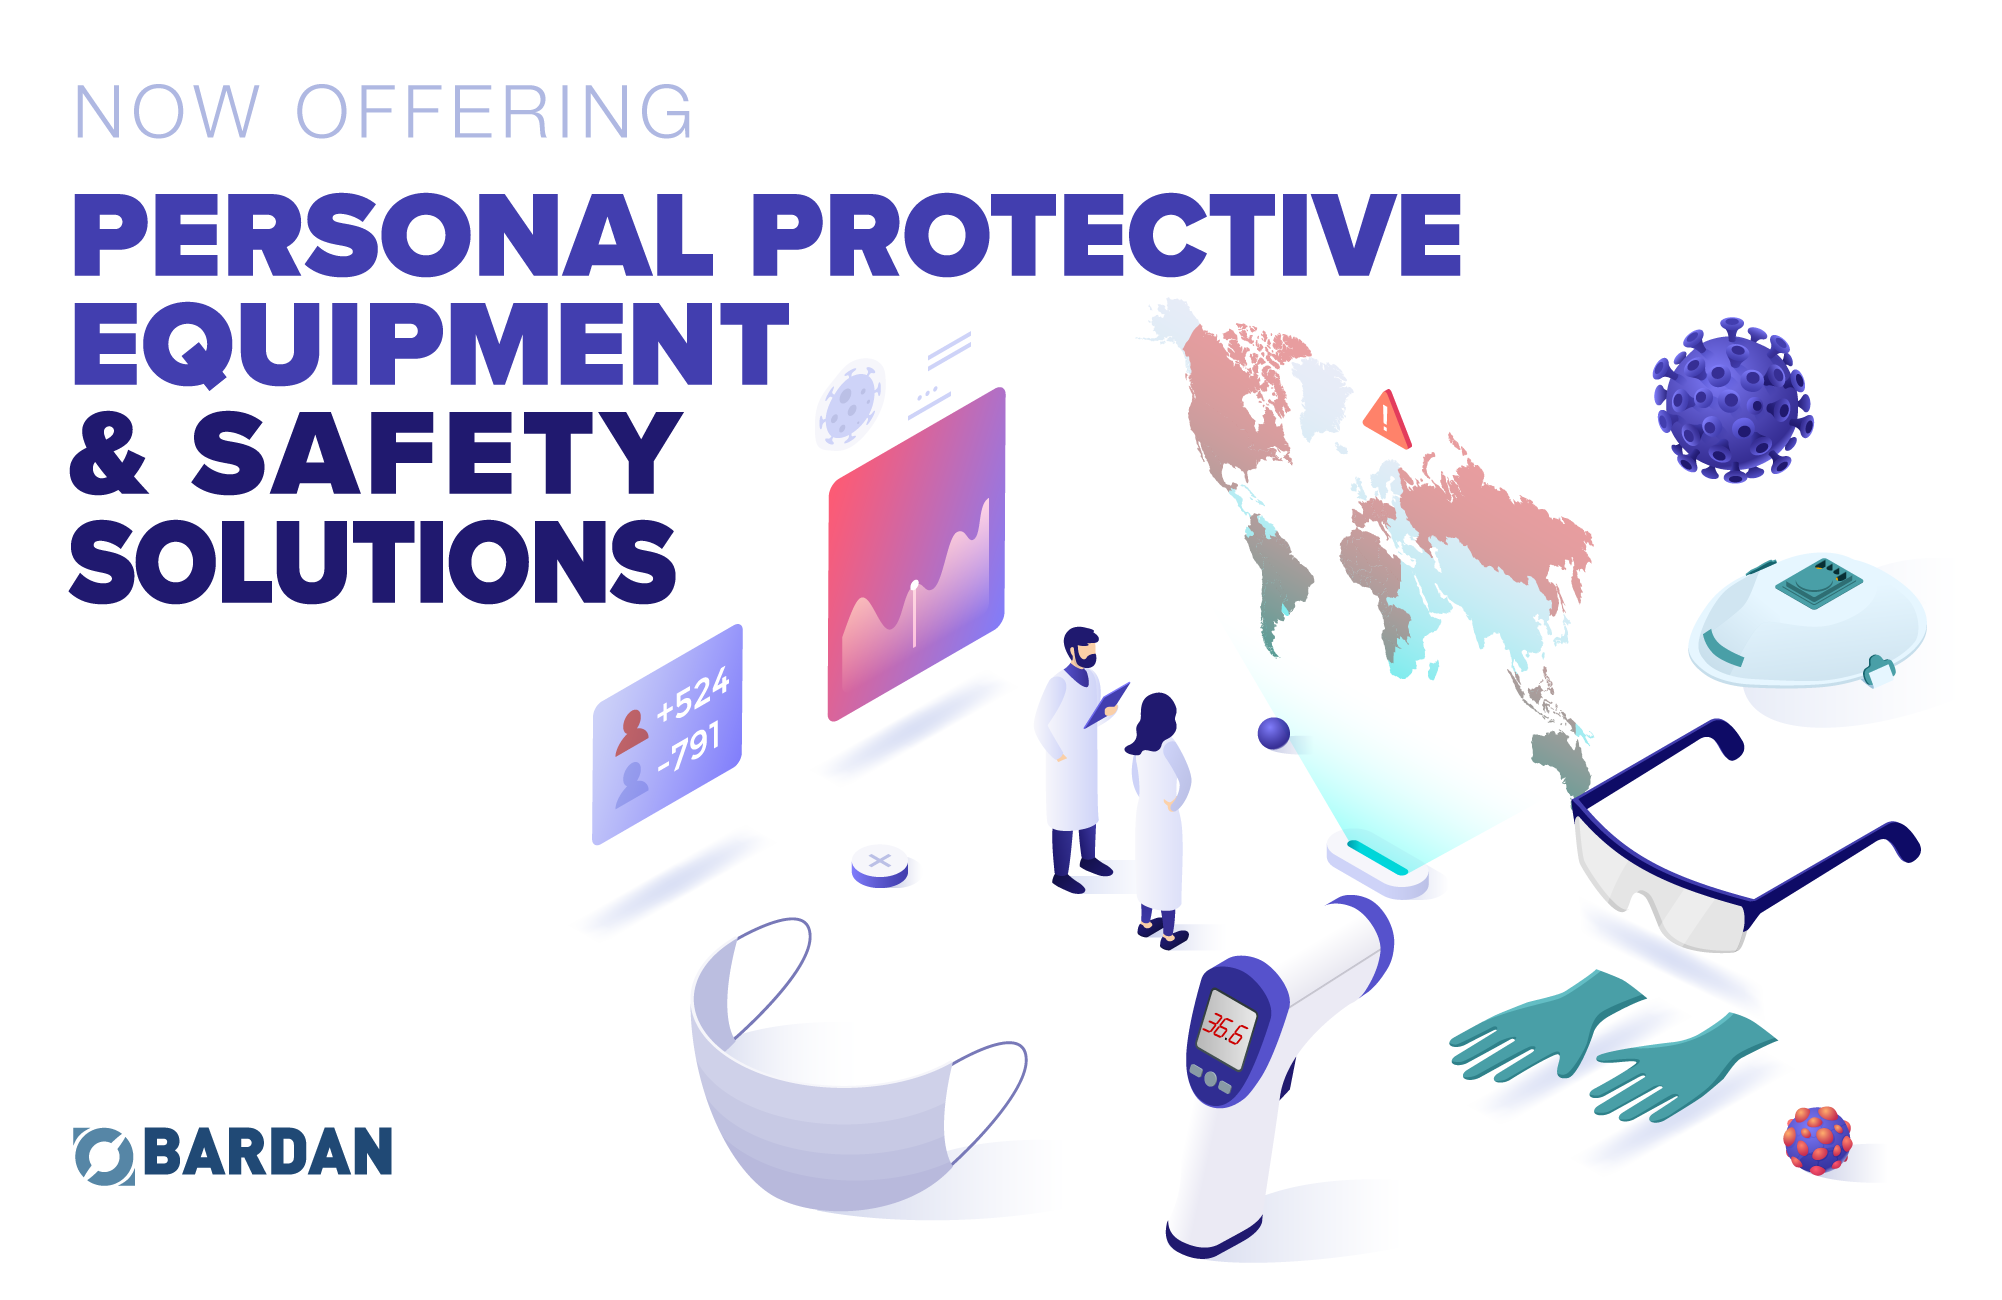 Bardan is now offering Personal Protective Equipment and Safety Solutions